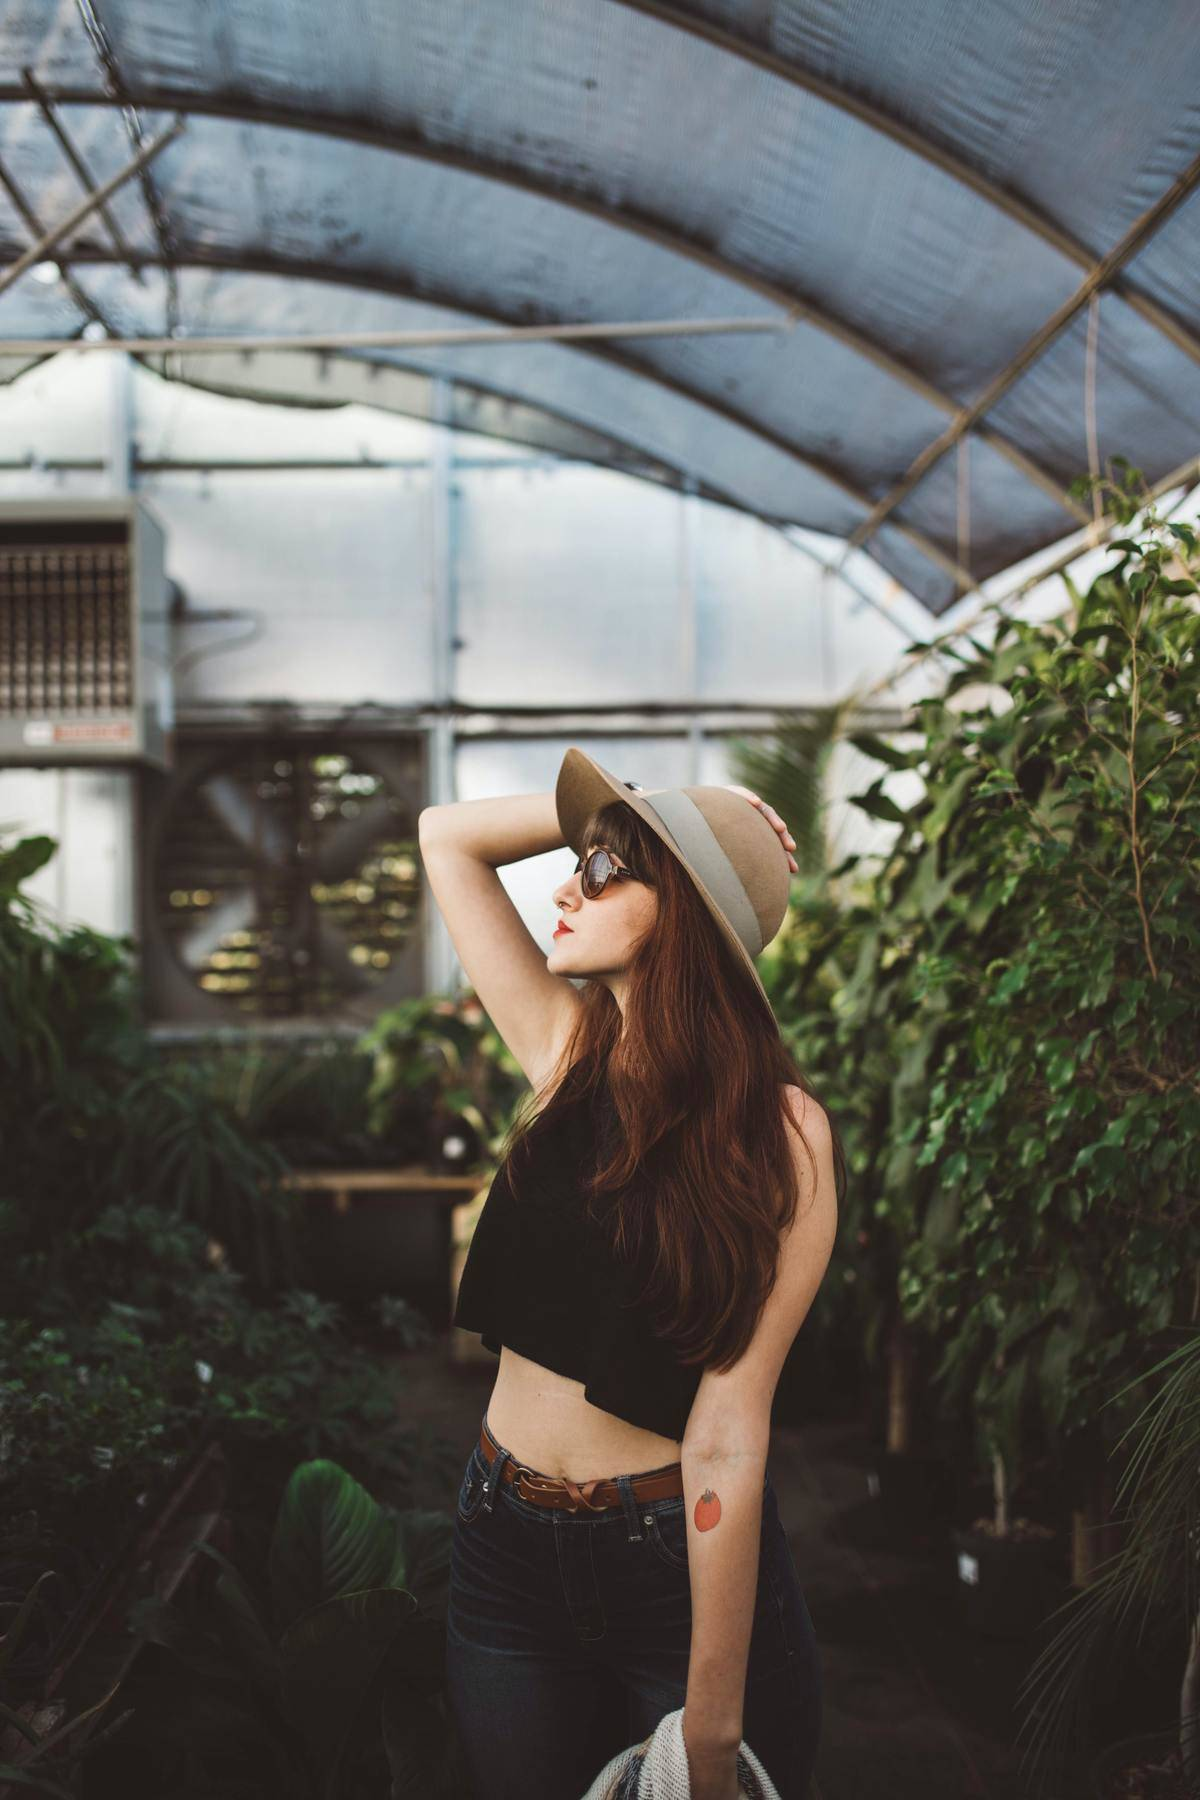 woman poses in greenhouse with glasses and hat